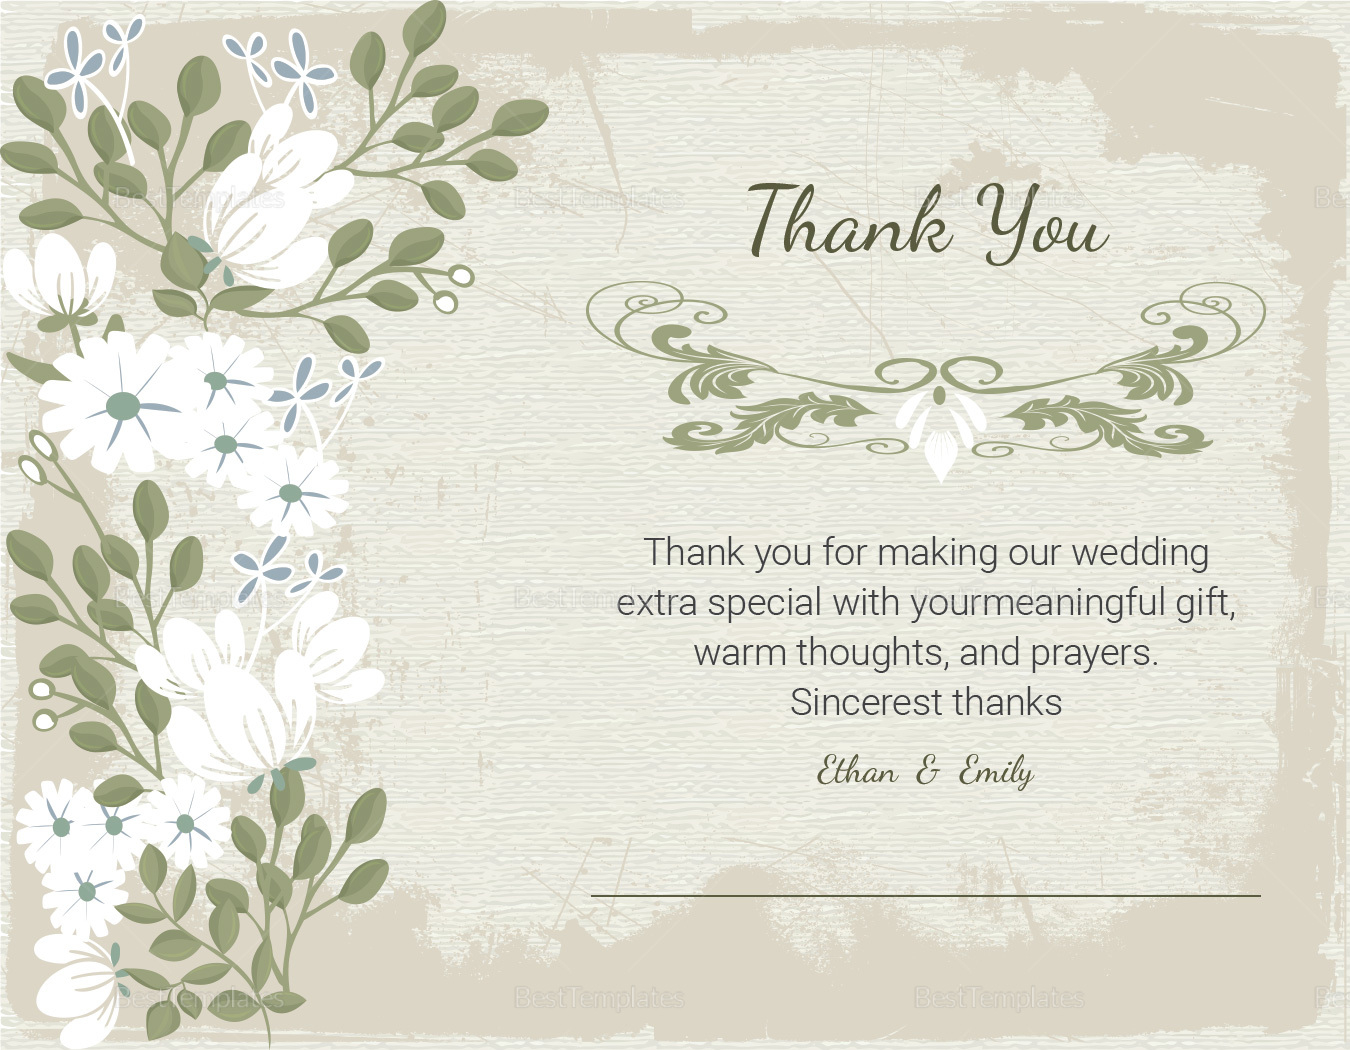 Vintage Thank You Card Template to Edit